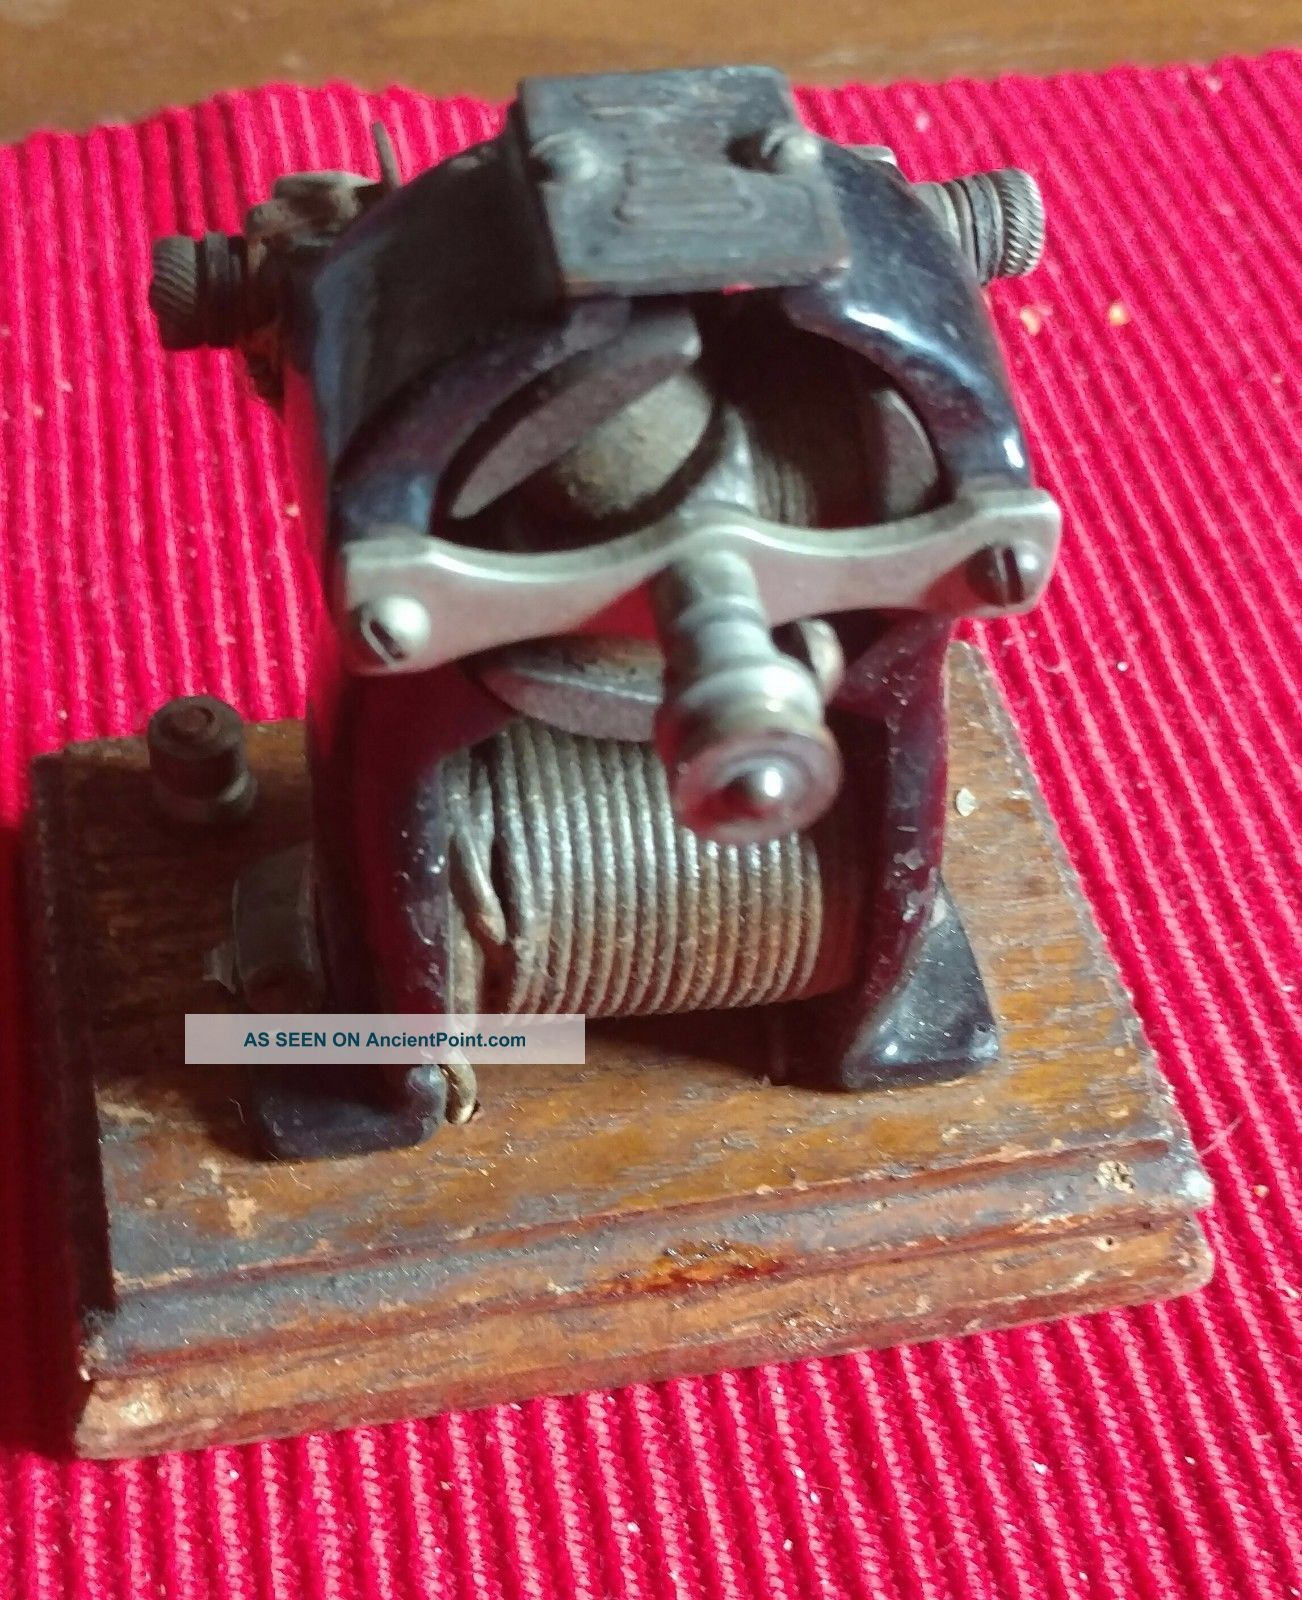 Antique Voltamp,  Small Electric Motor,  Baltimore Train Maker Other Antique Science Equip photo